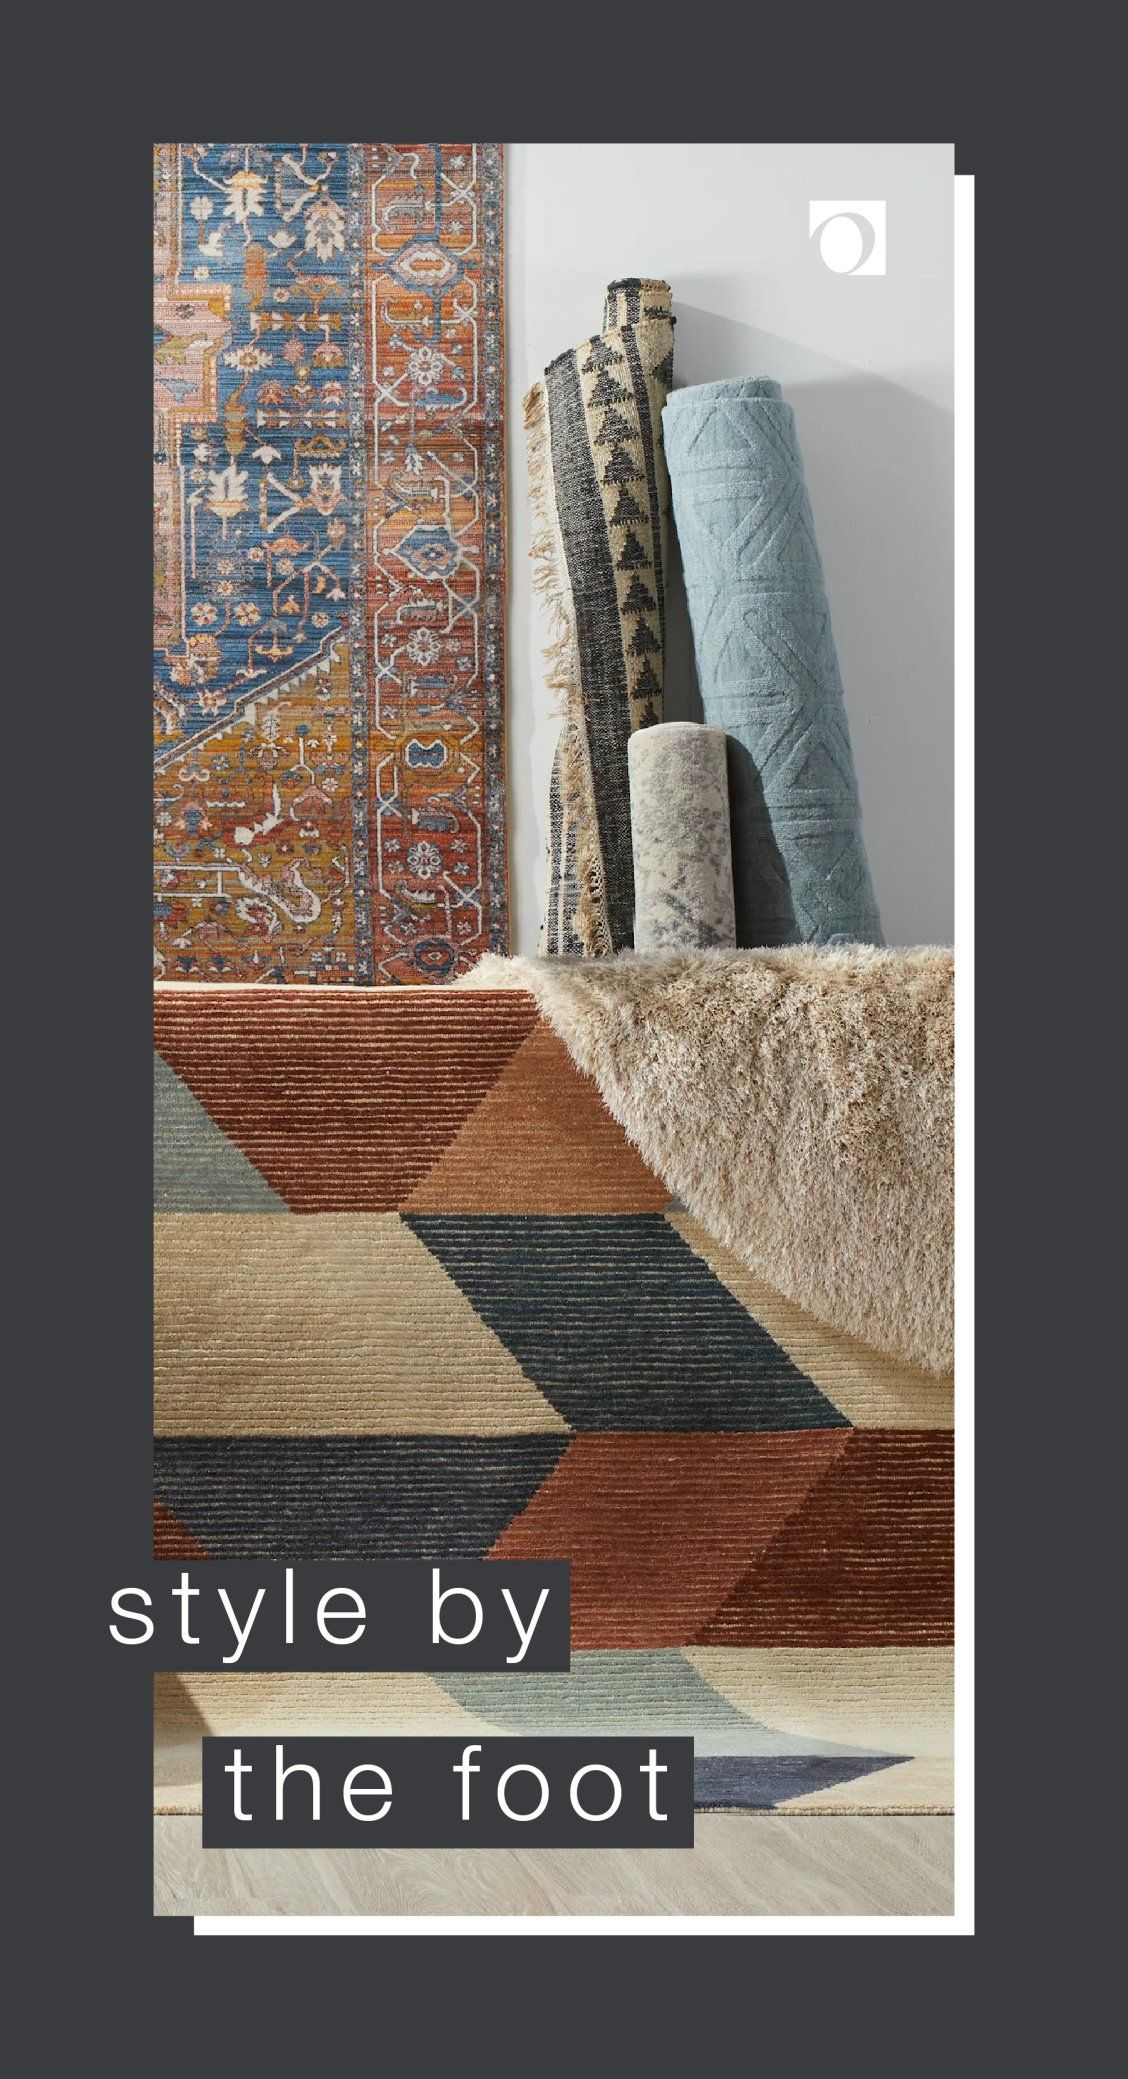 Tons of style in store for your floor. Shop magnificently made area rugs at Overstock, where quality costs less. #rugs #arearugs #homedecor #decor #homeessentials #homeideas #homerugs #indoorrugs #outdoorrugs #rugstyles #flooressentials #rugessentials #stylishrugs #durablerugs #arearugdeals #rugpatterns #uniquearearugs #uniquerugs #homeaccents #accents #homedecor #cozyrugs #stylisharearugs